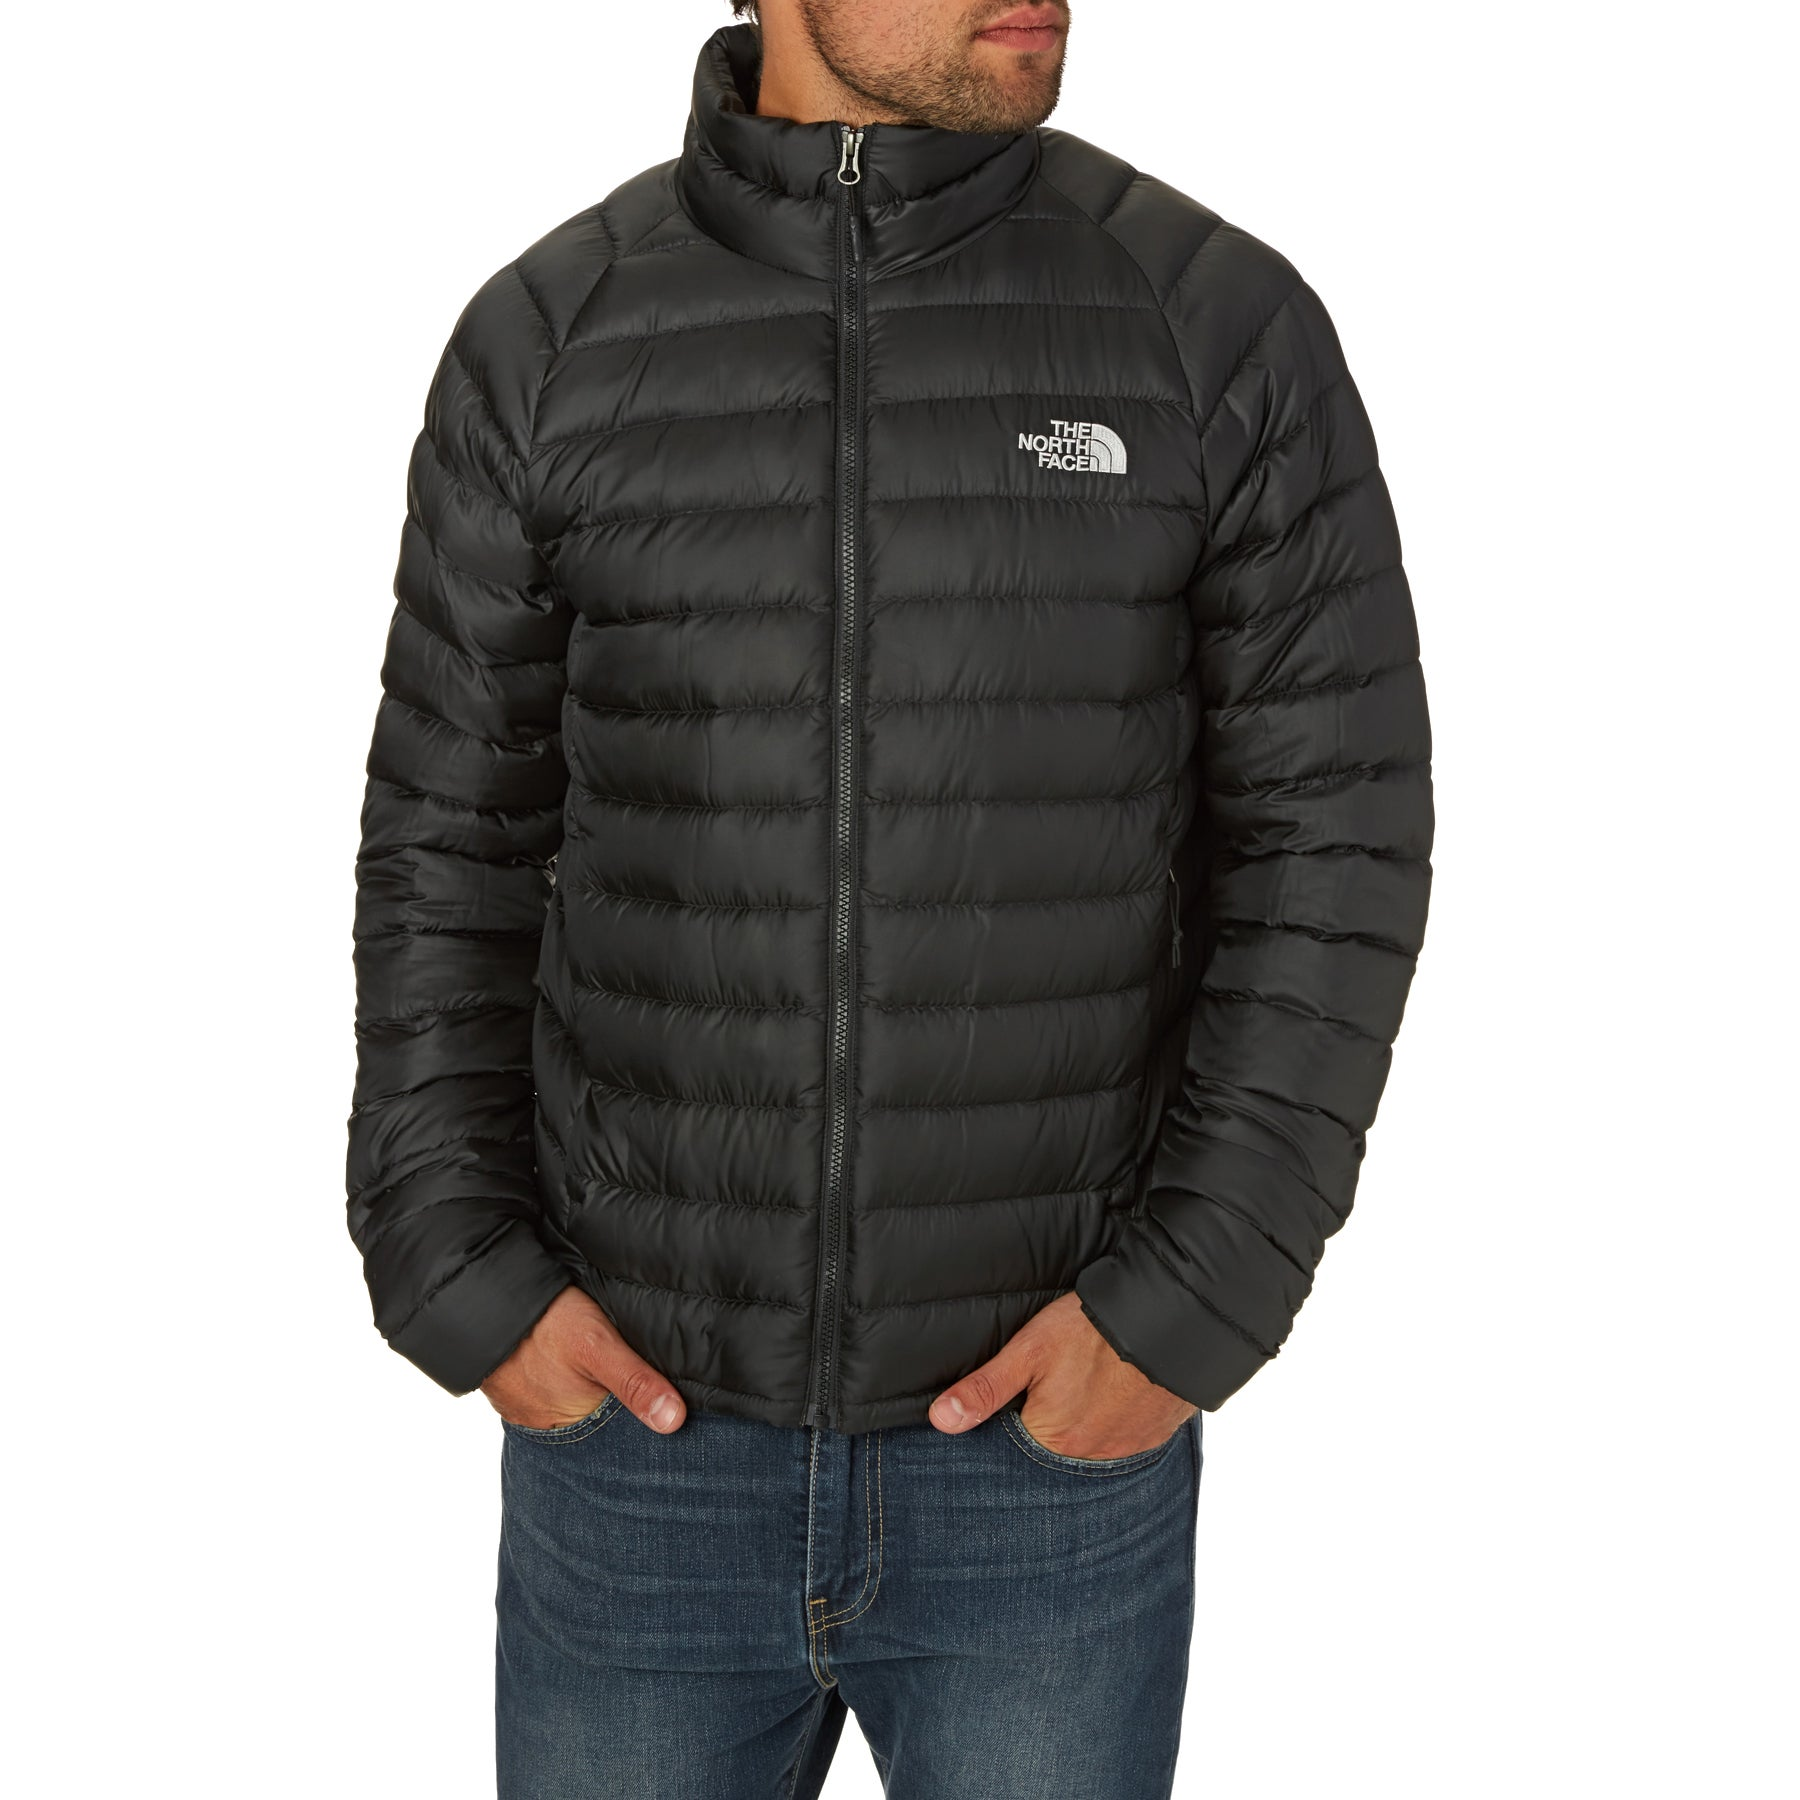 Veste North Face Trevail - TNF Black